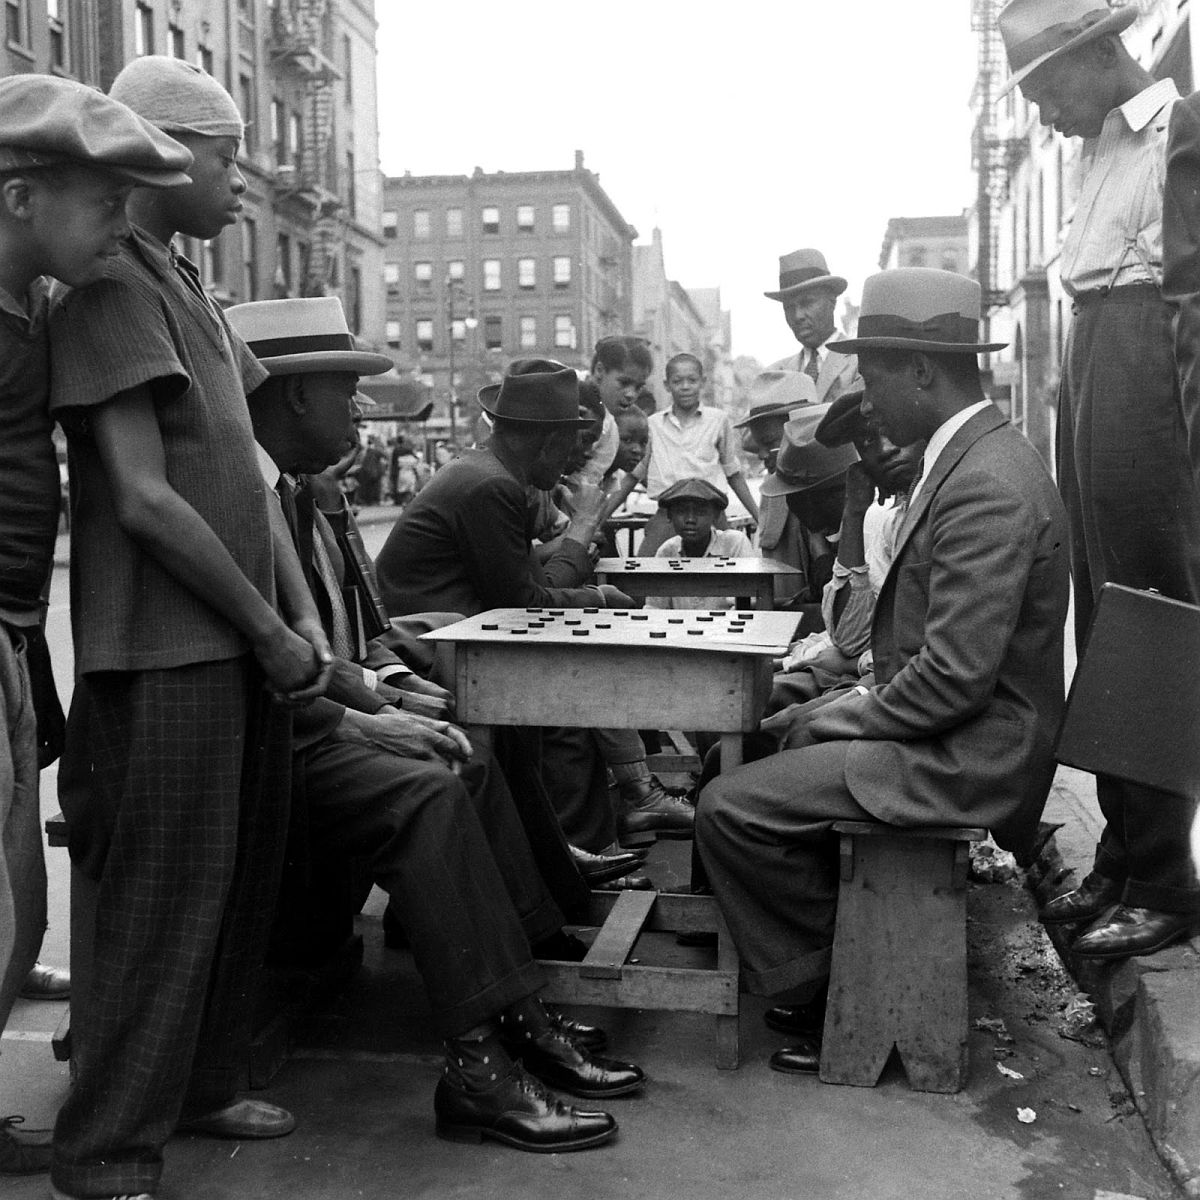 Men face off in stiff competition as boys look on, Harlem, 1938.